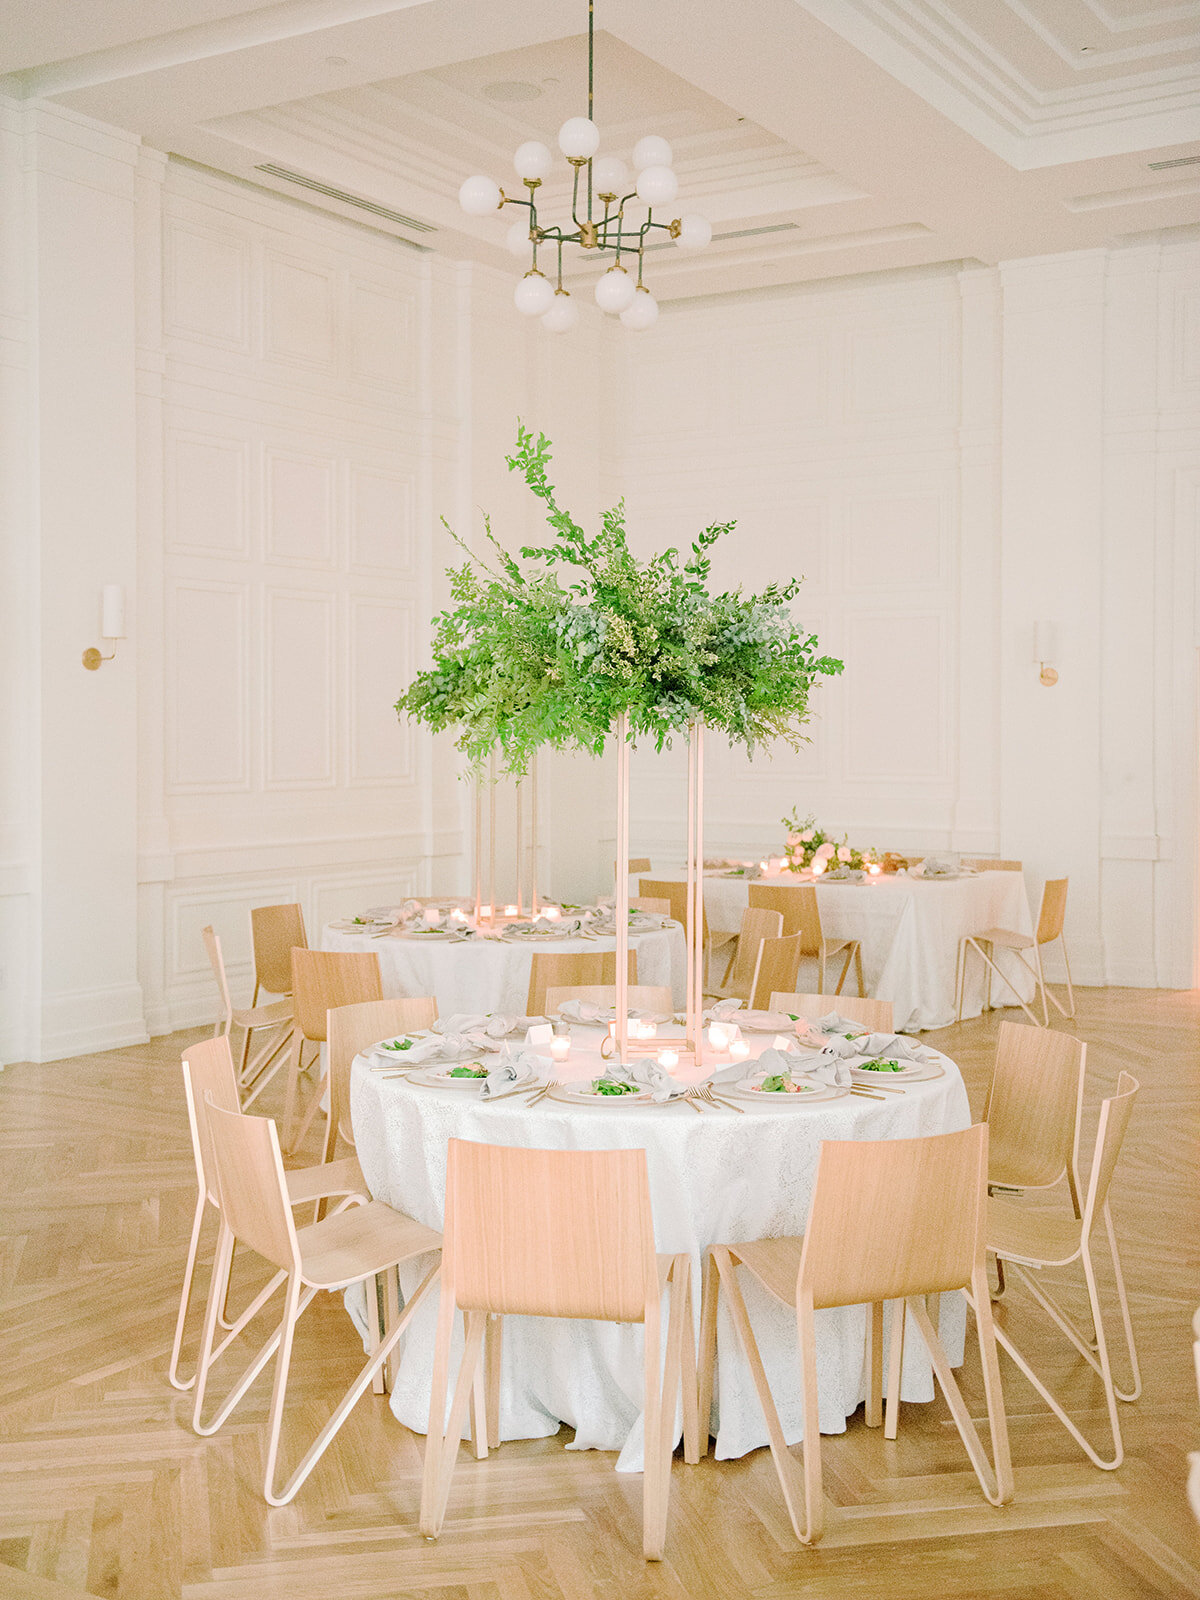 All greenery arrangement on modern gold stand for an elegant blush and cream wedding at the Noelle, Nashville.